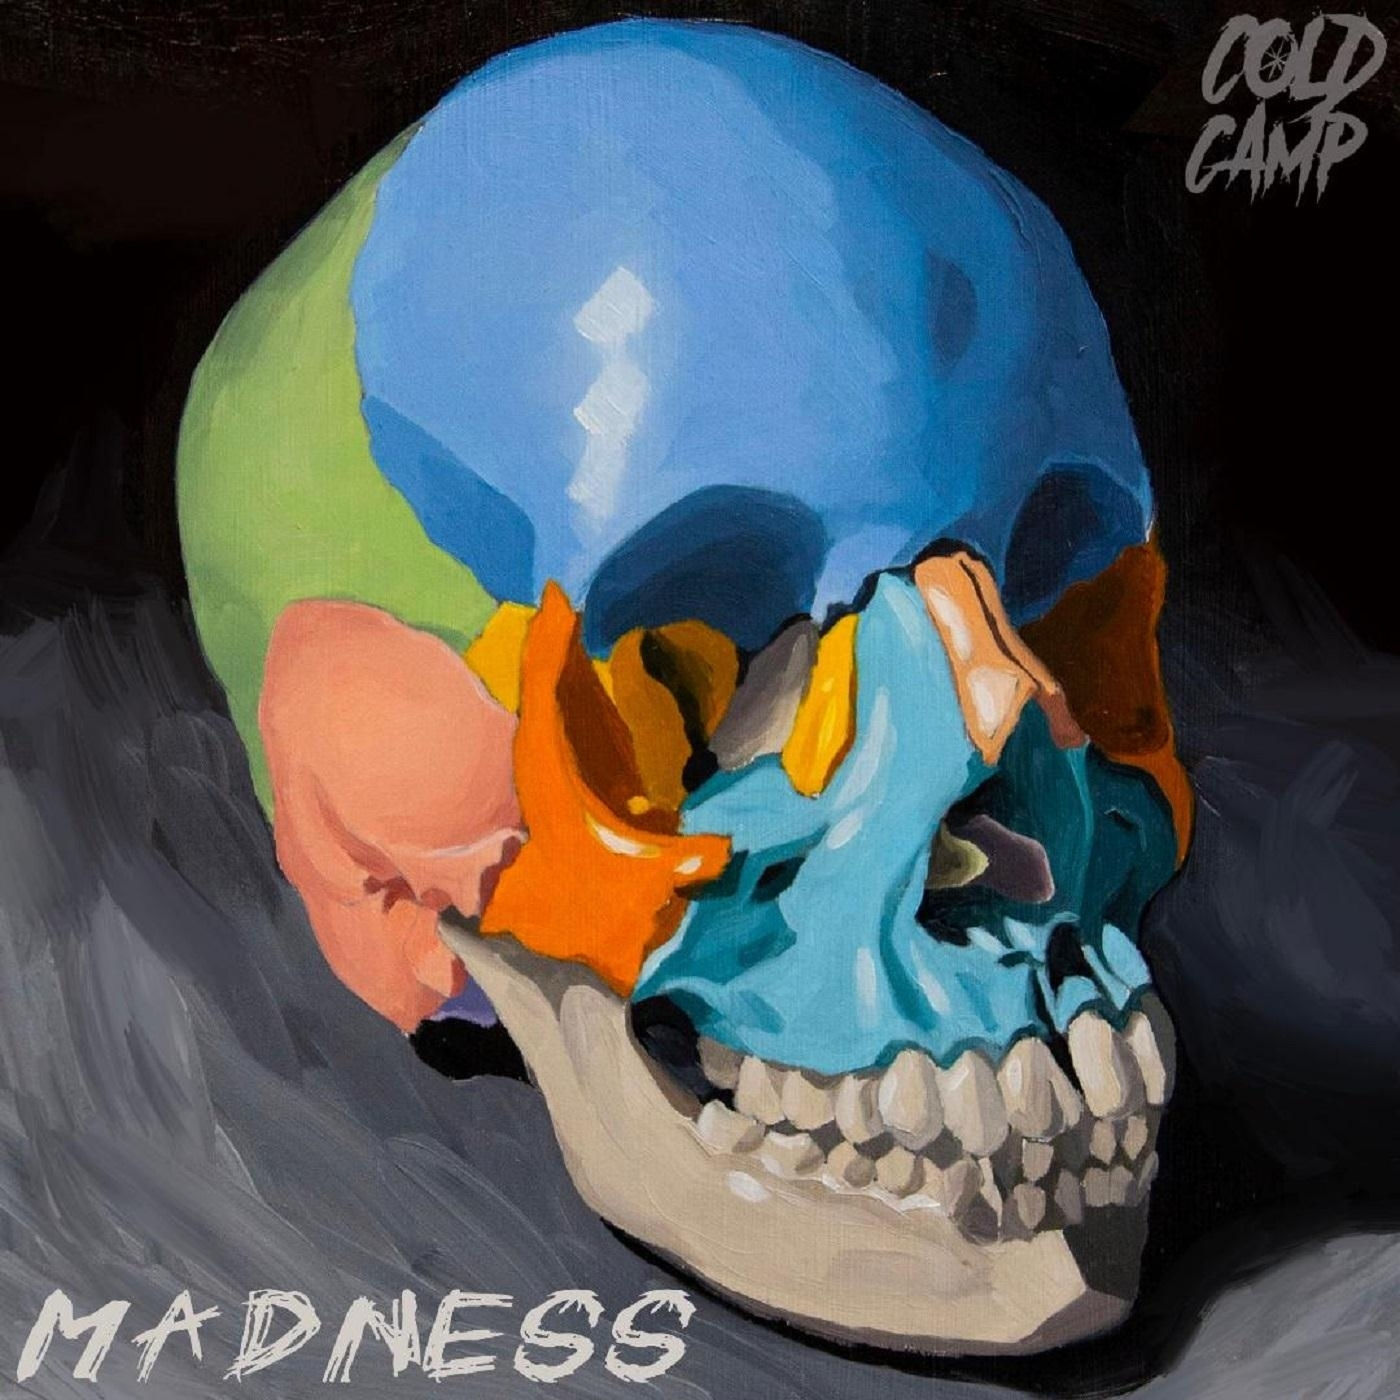 Cold Camp - Madness [single] (2020)